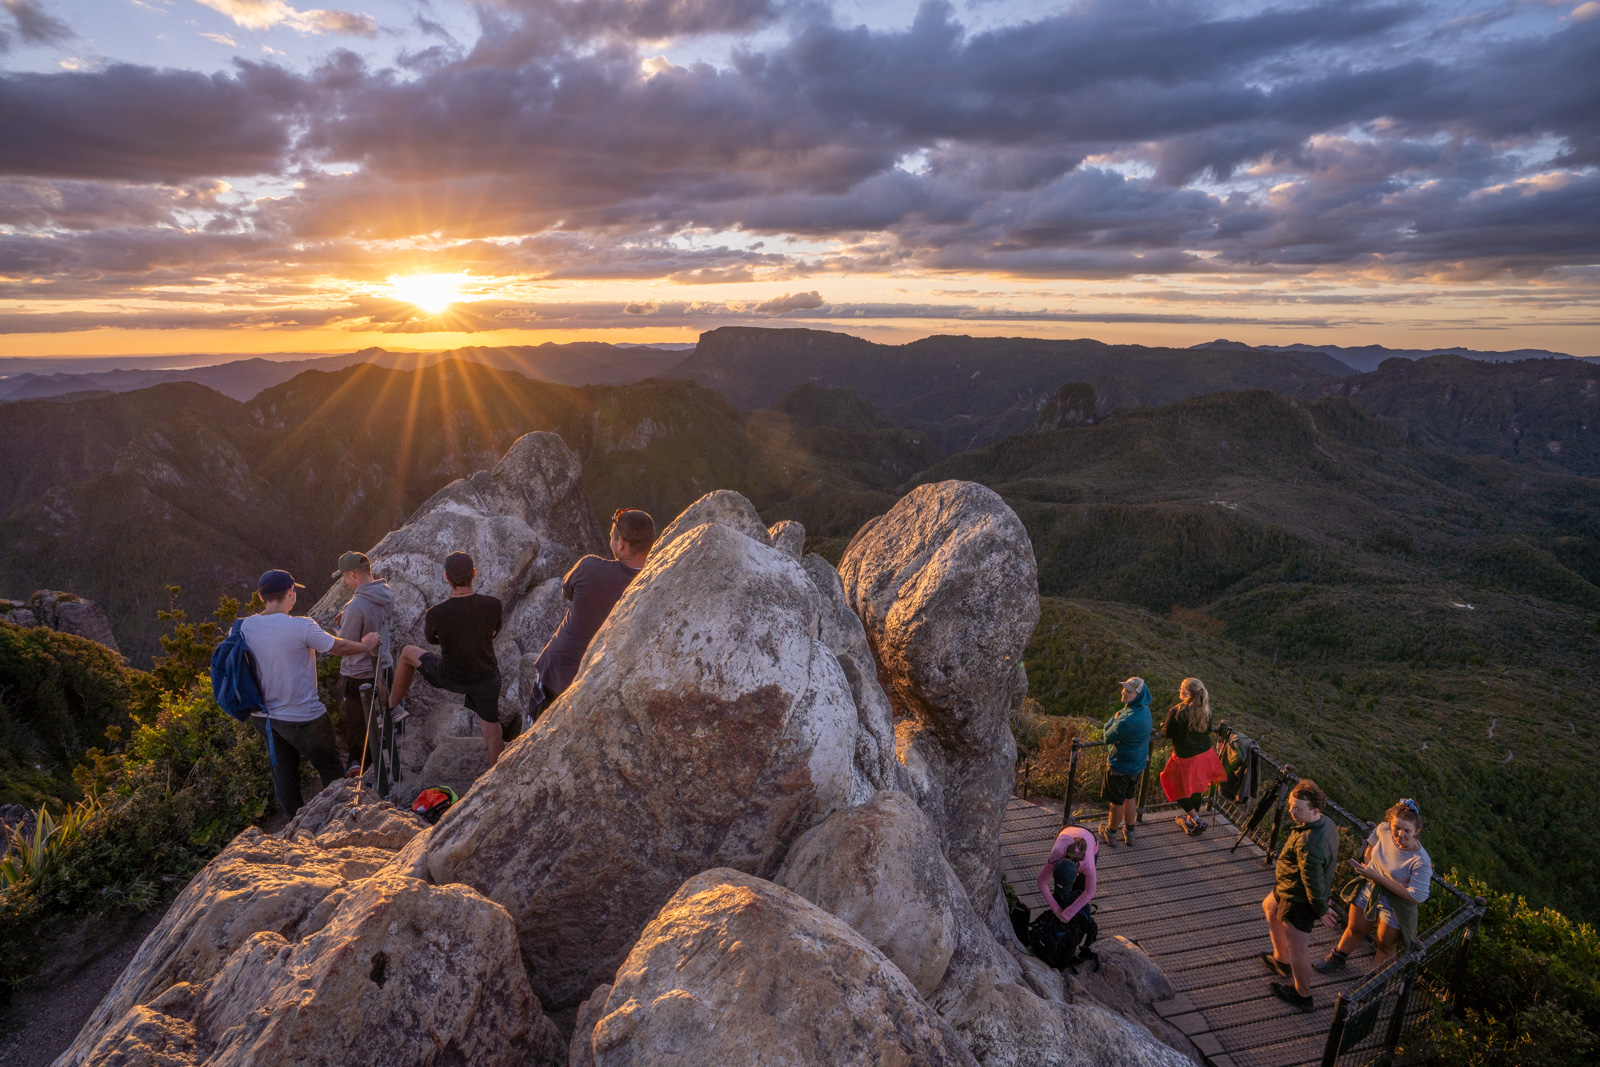 The Pinnacles Sunset Experience